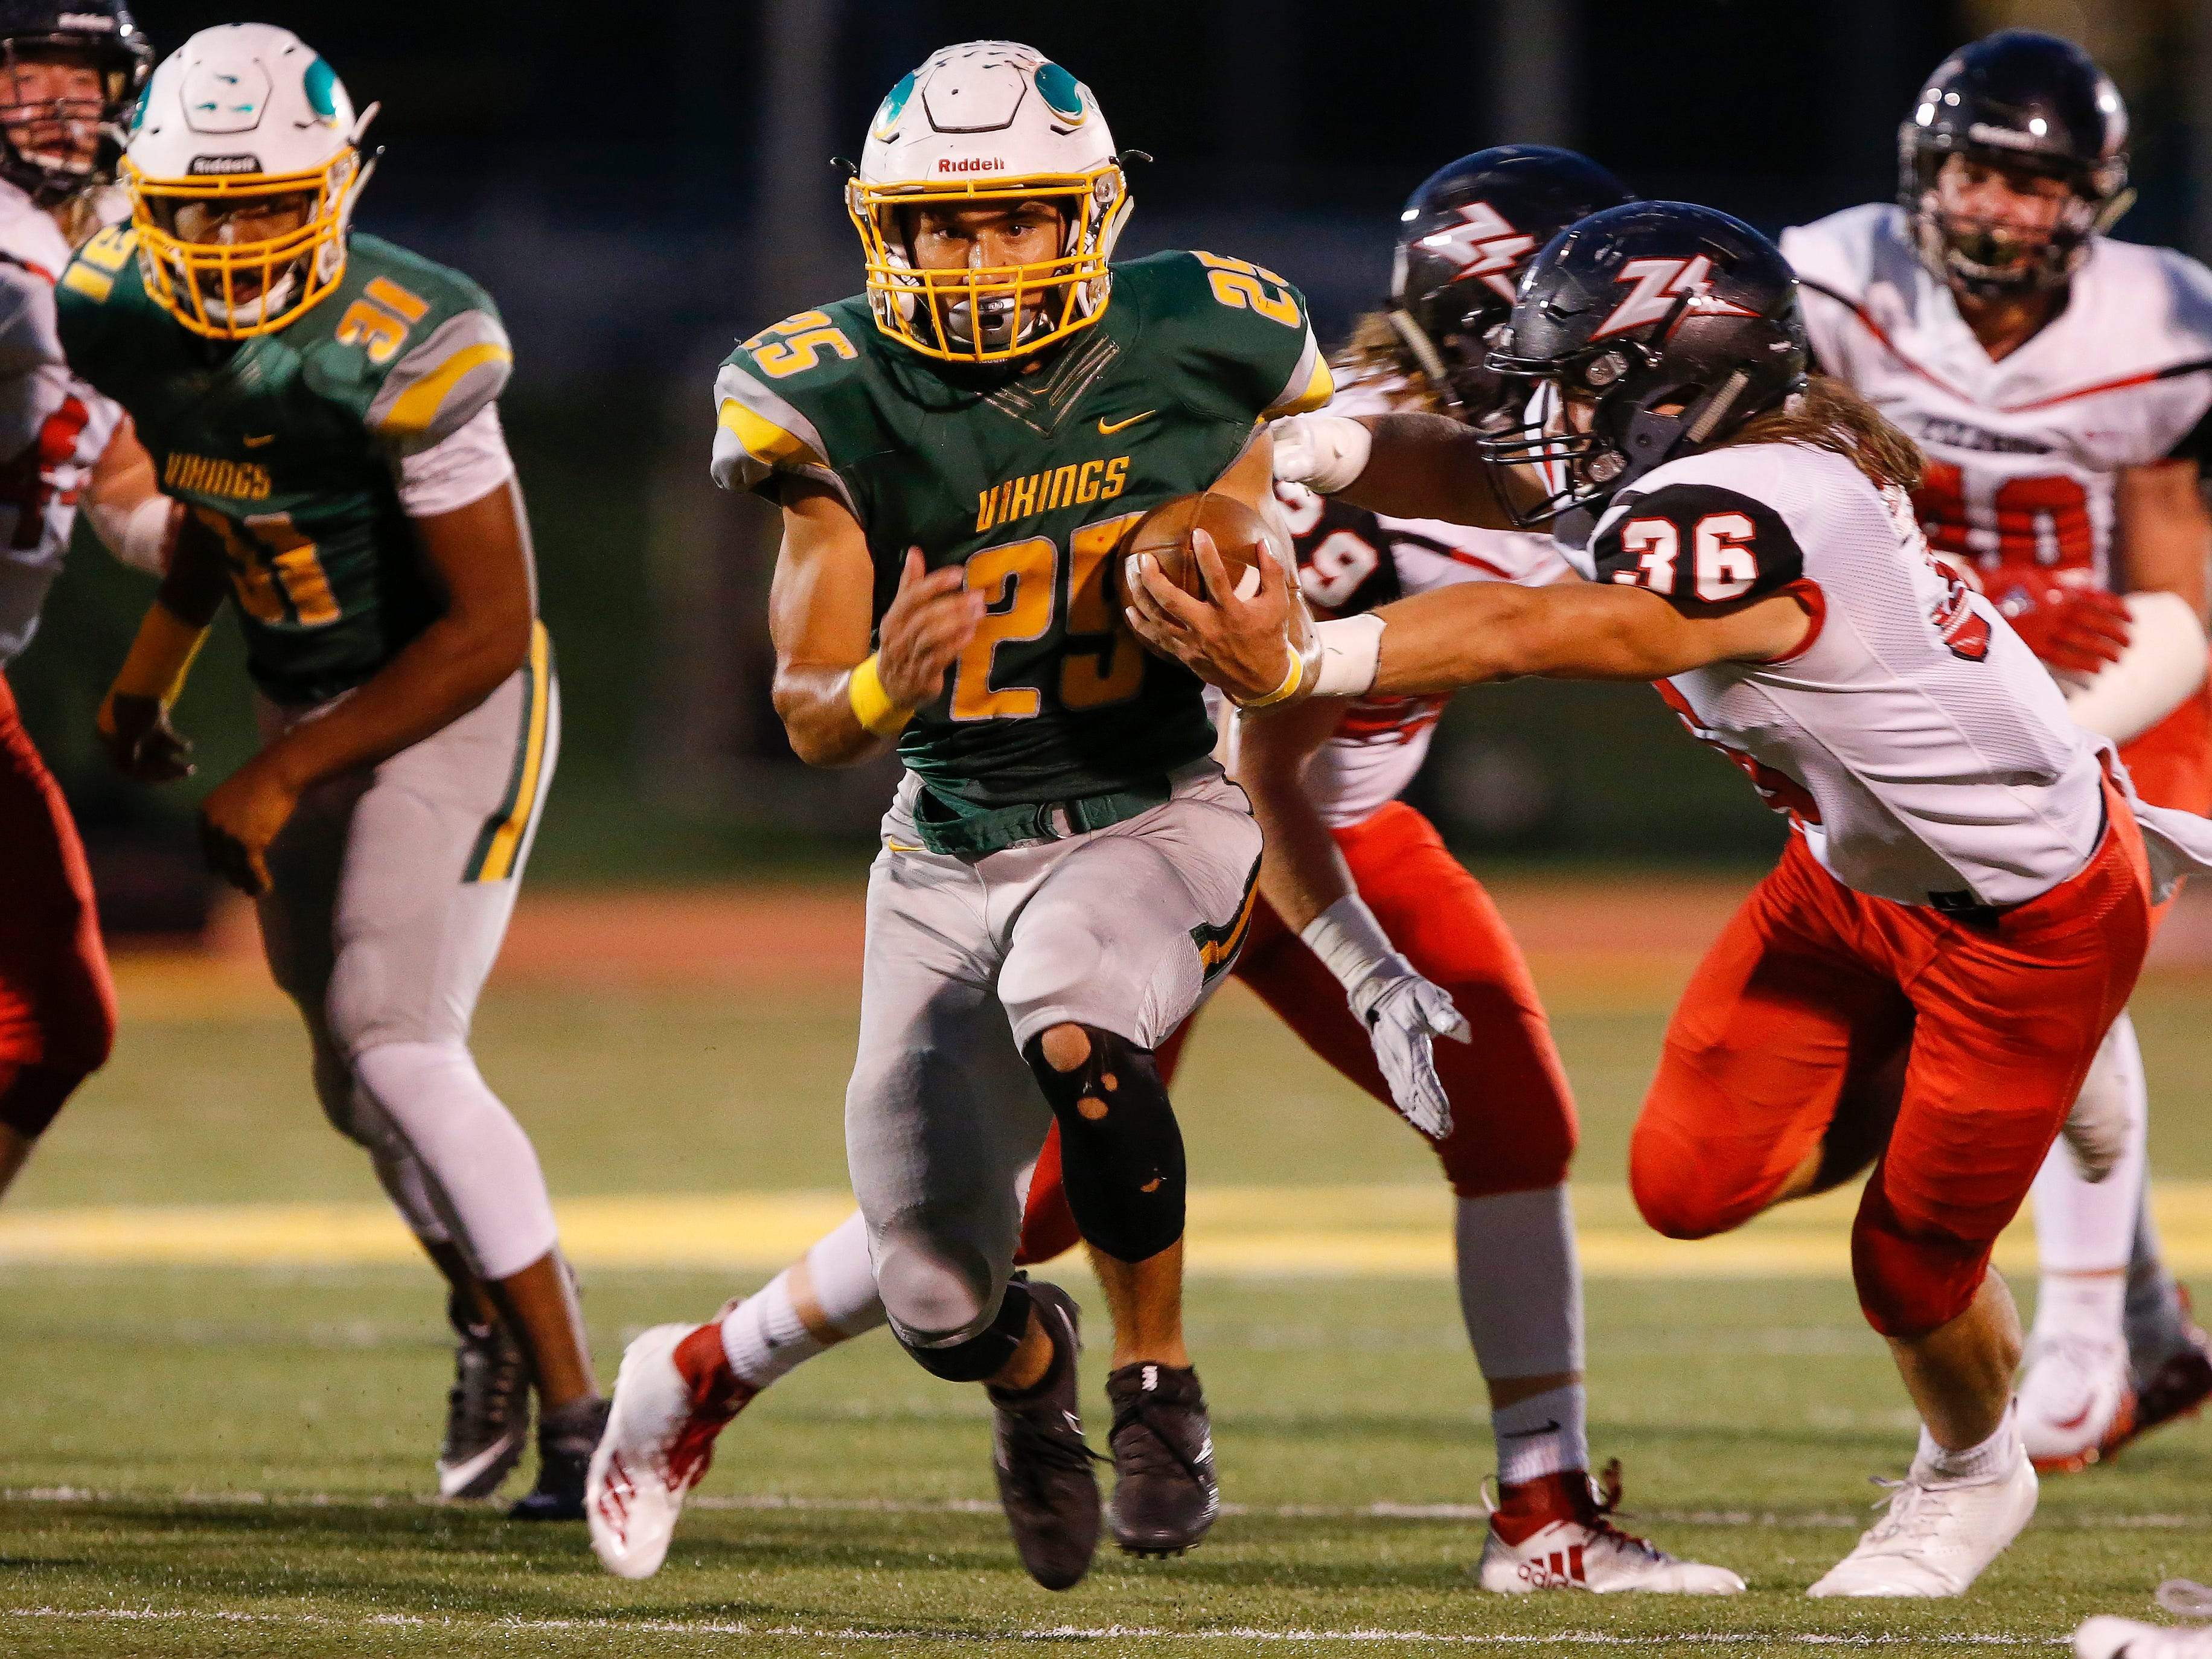 Scenes from the West Plains and Parkview football game at Parkview High School on Friday, Sept. 28, 2018.